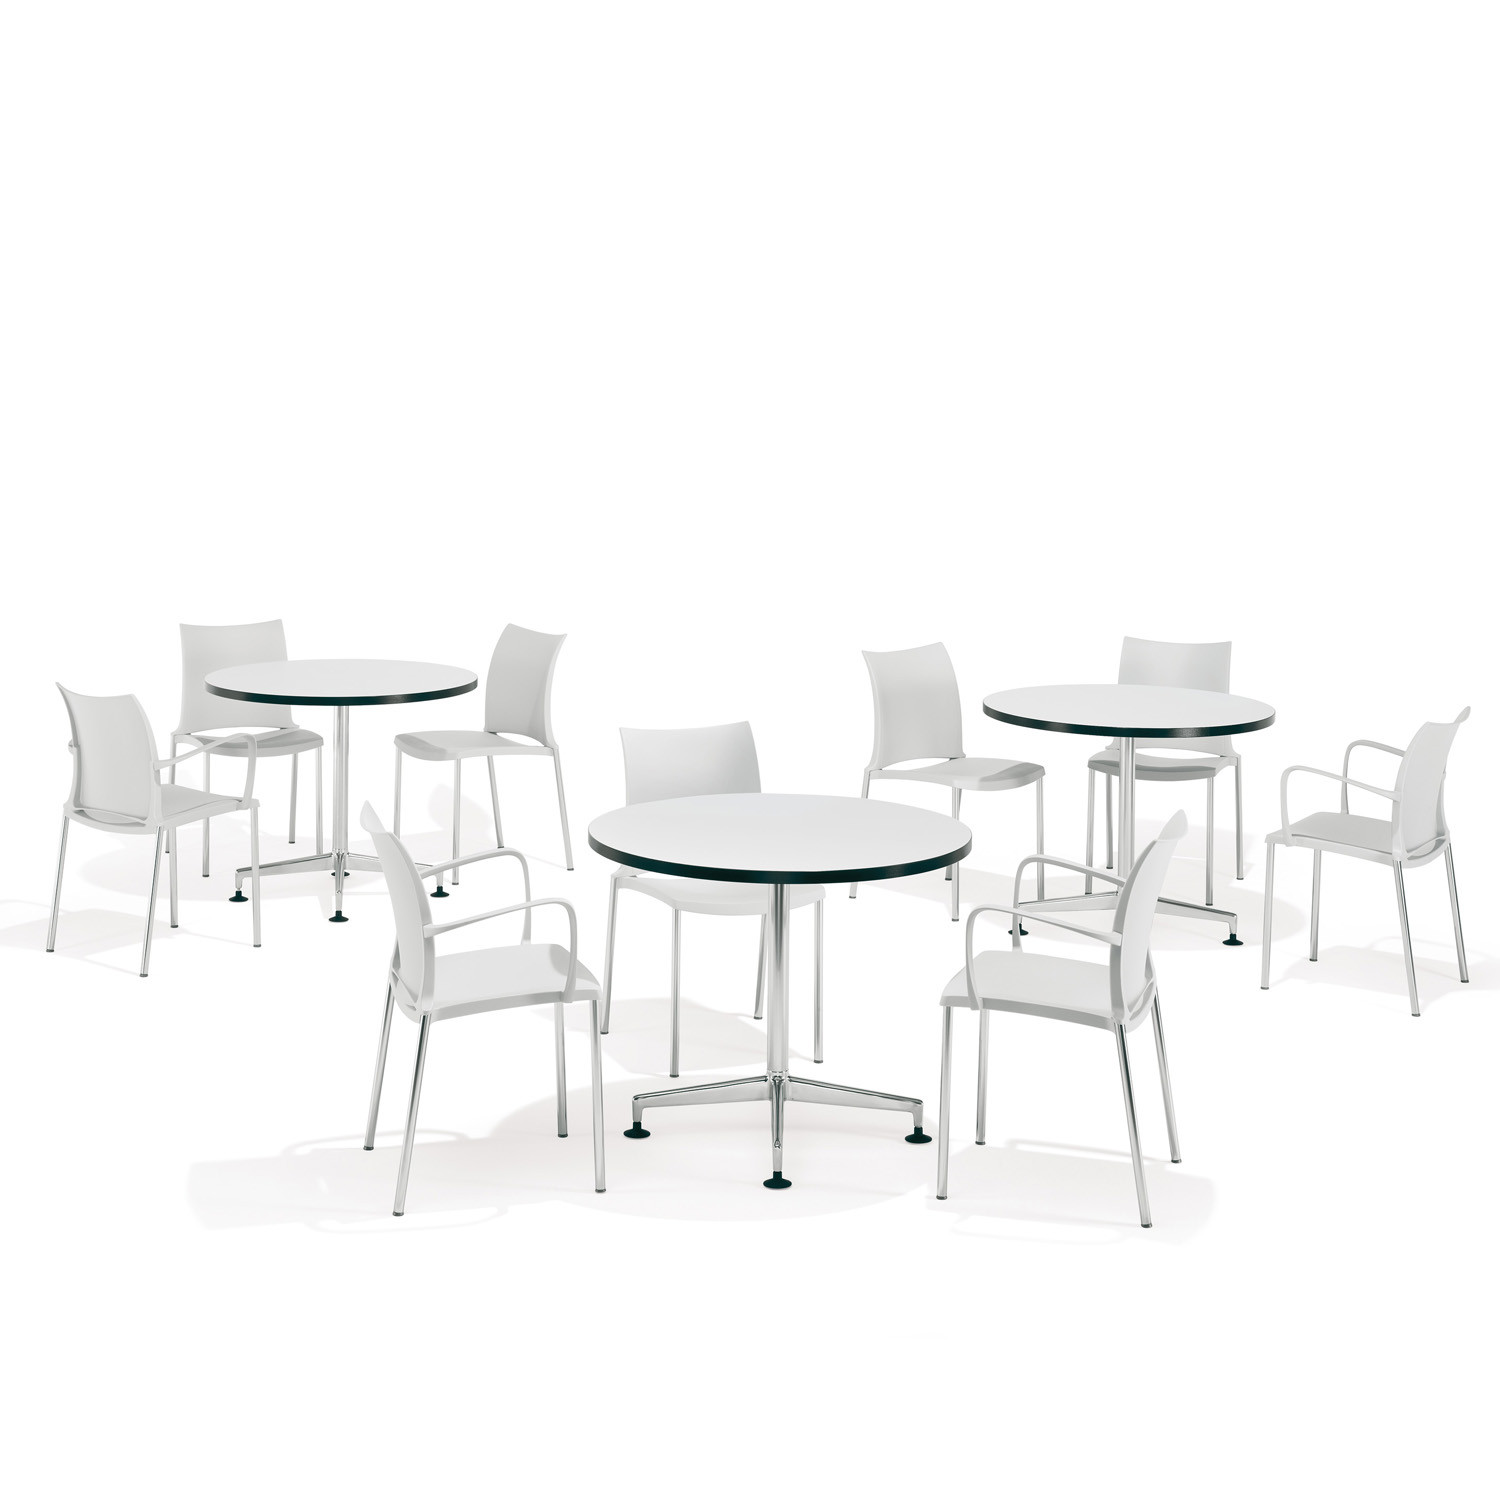 8400 Standalone Round Tables for Breakout Areas